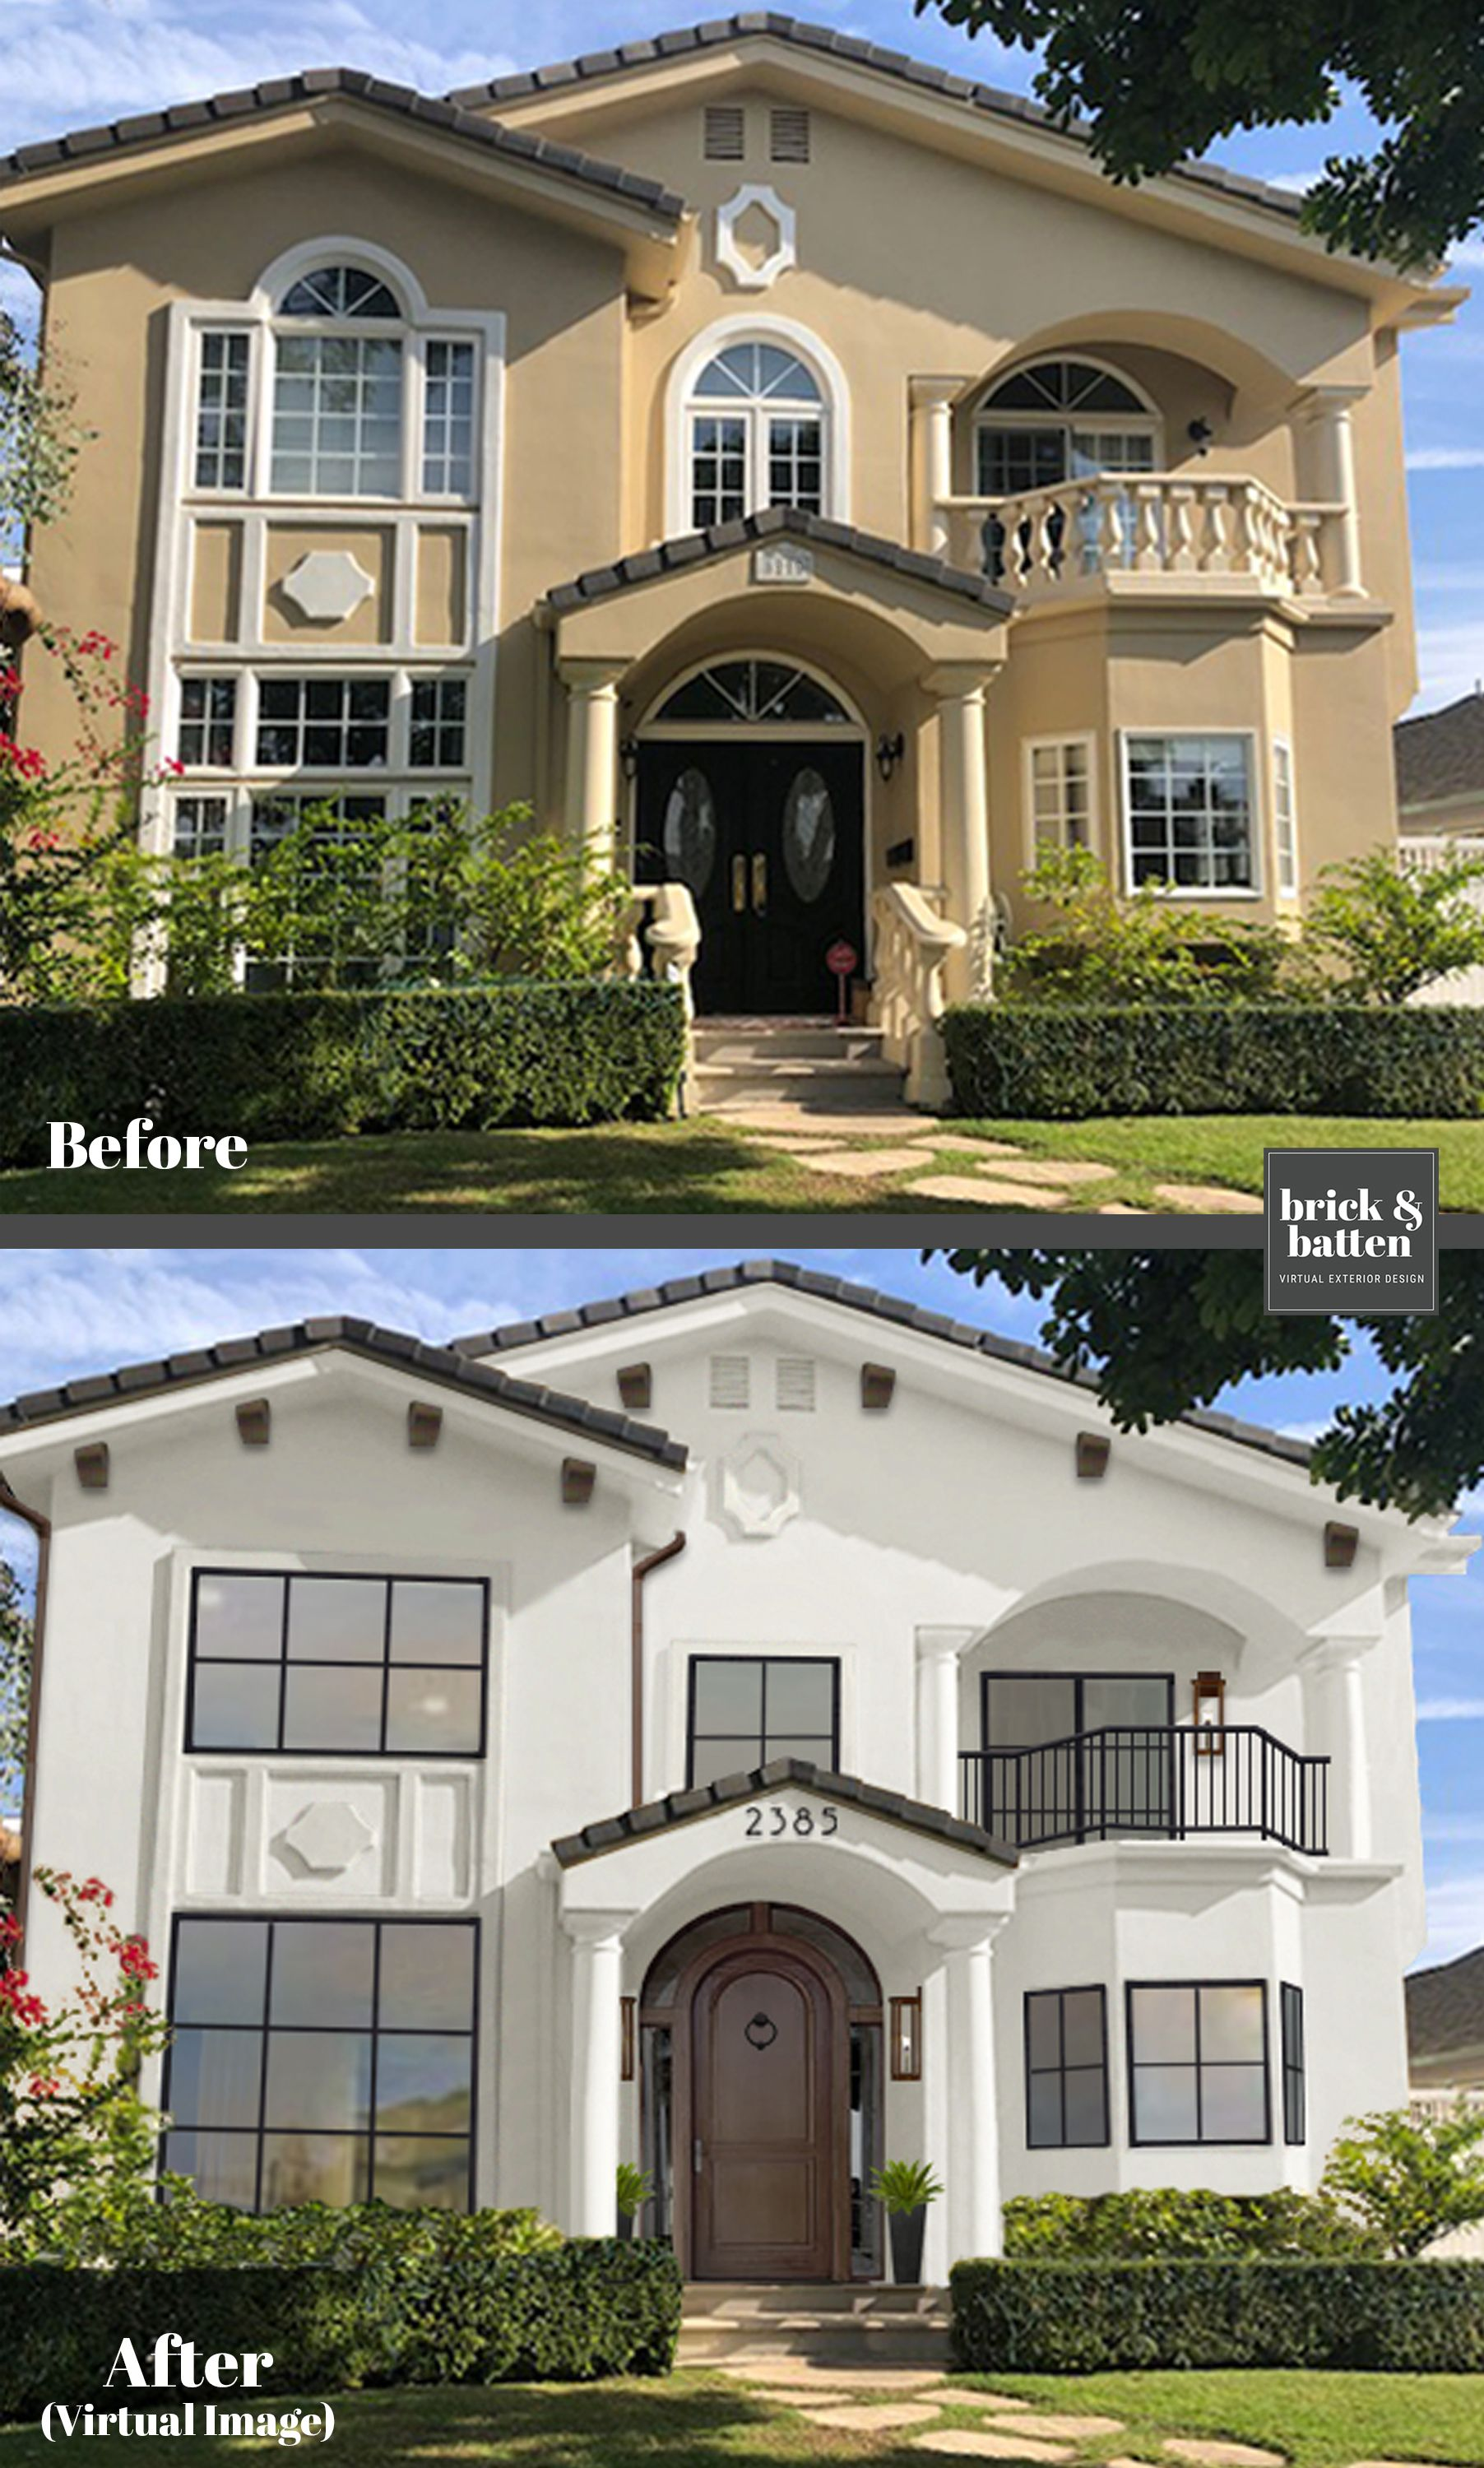 2020 Exterior House Color Trends.Exterior Home Trends Coming Your Way In 2020 Exterior